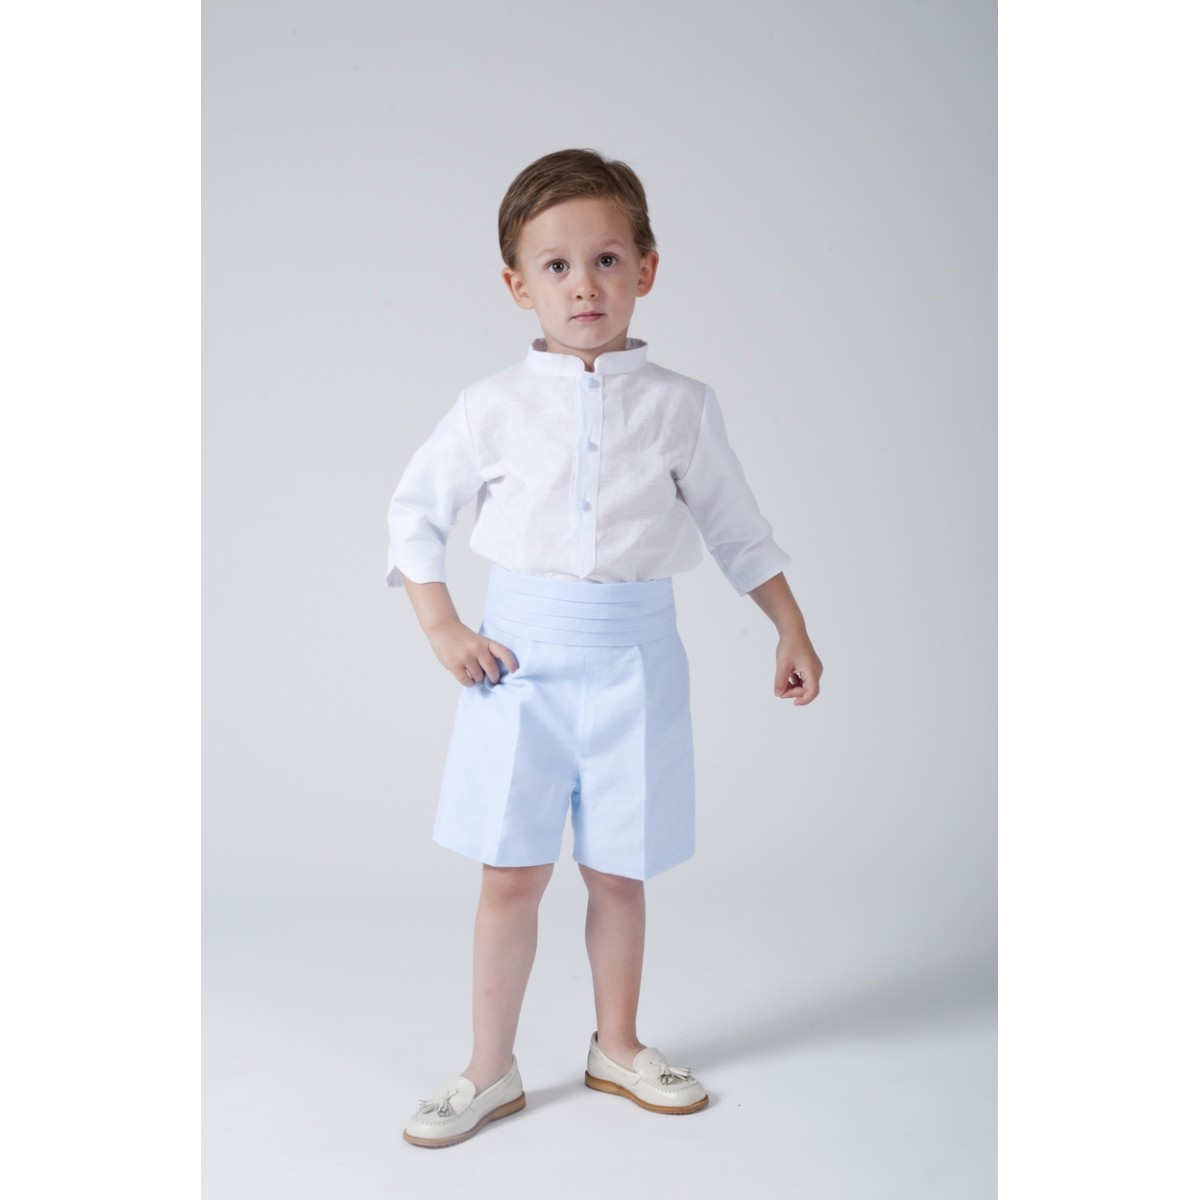 7dfdde61ee Special Occasion - Golositos Ropa Infantil